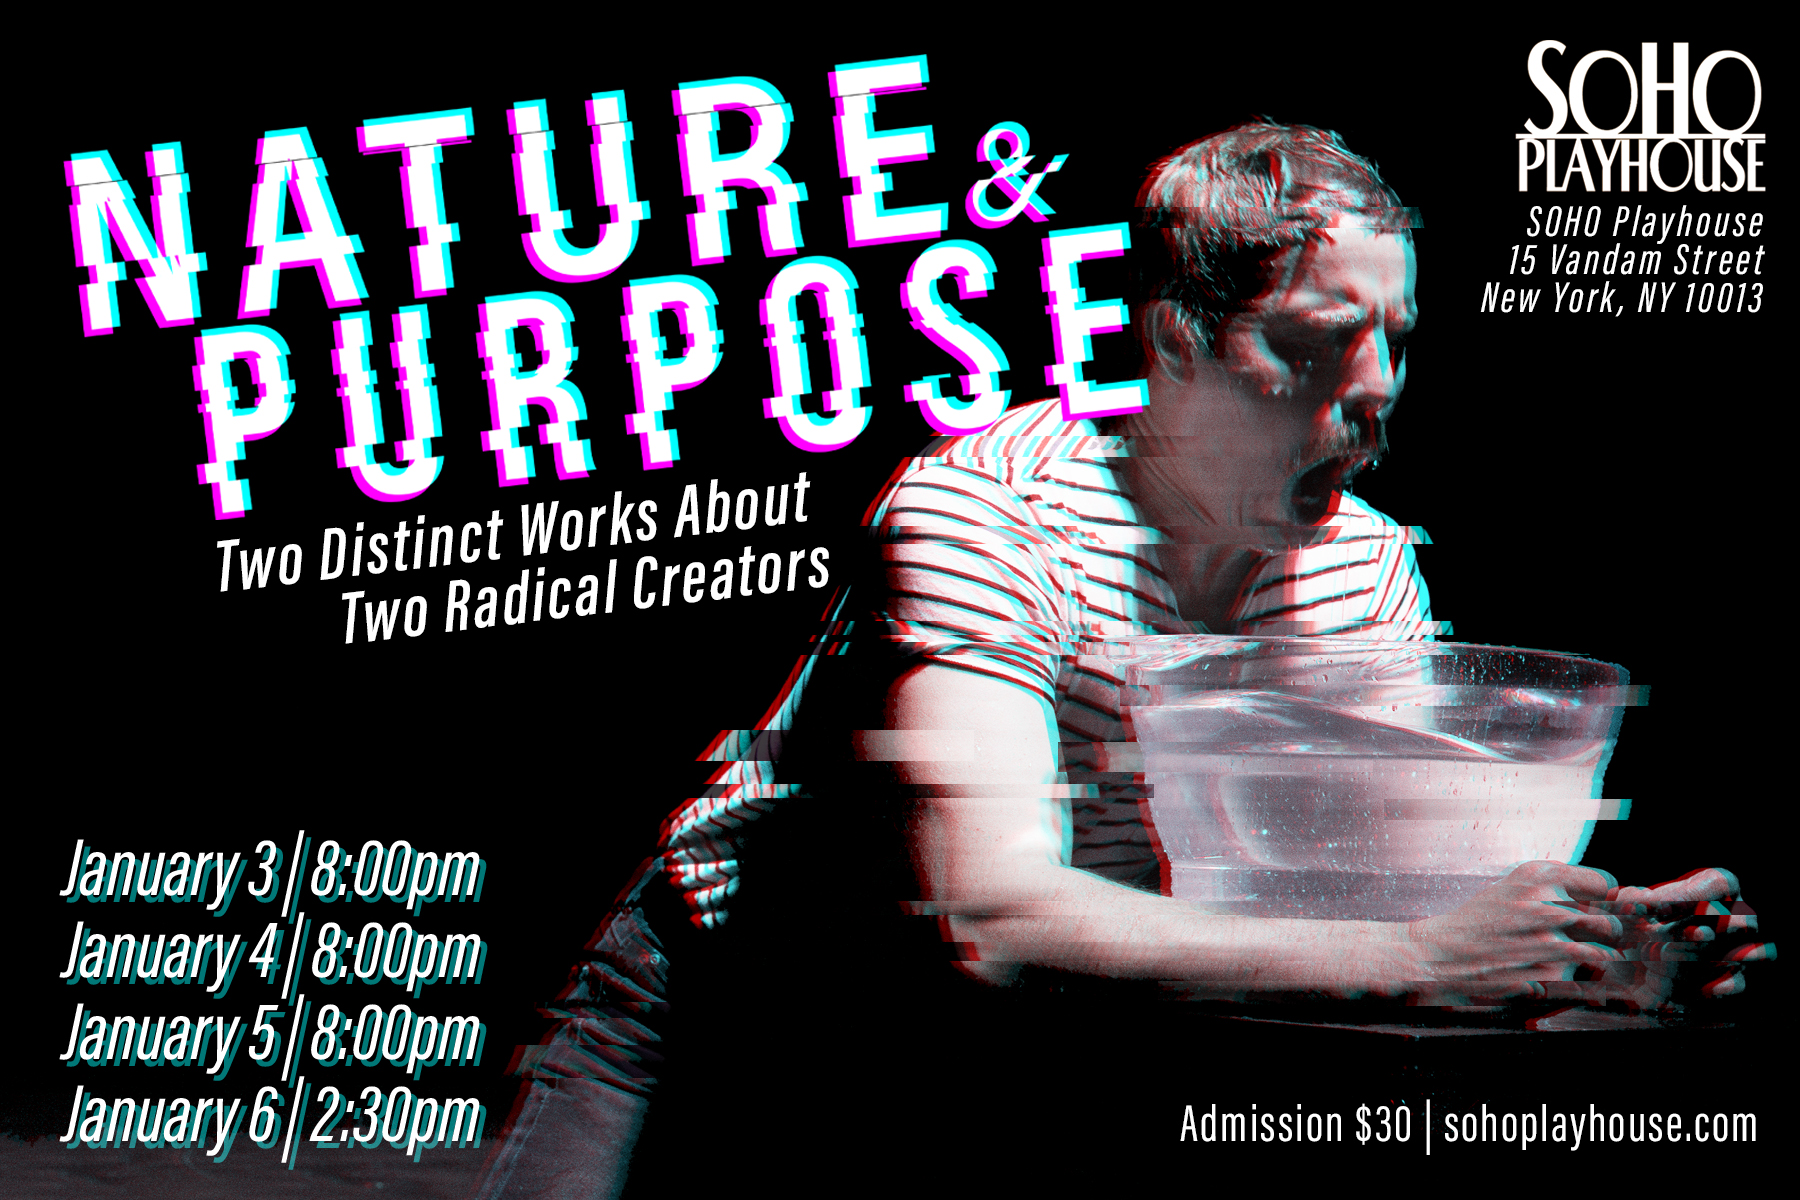 Nature & Purpose Play Postcard